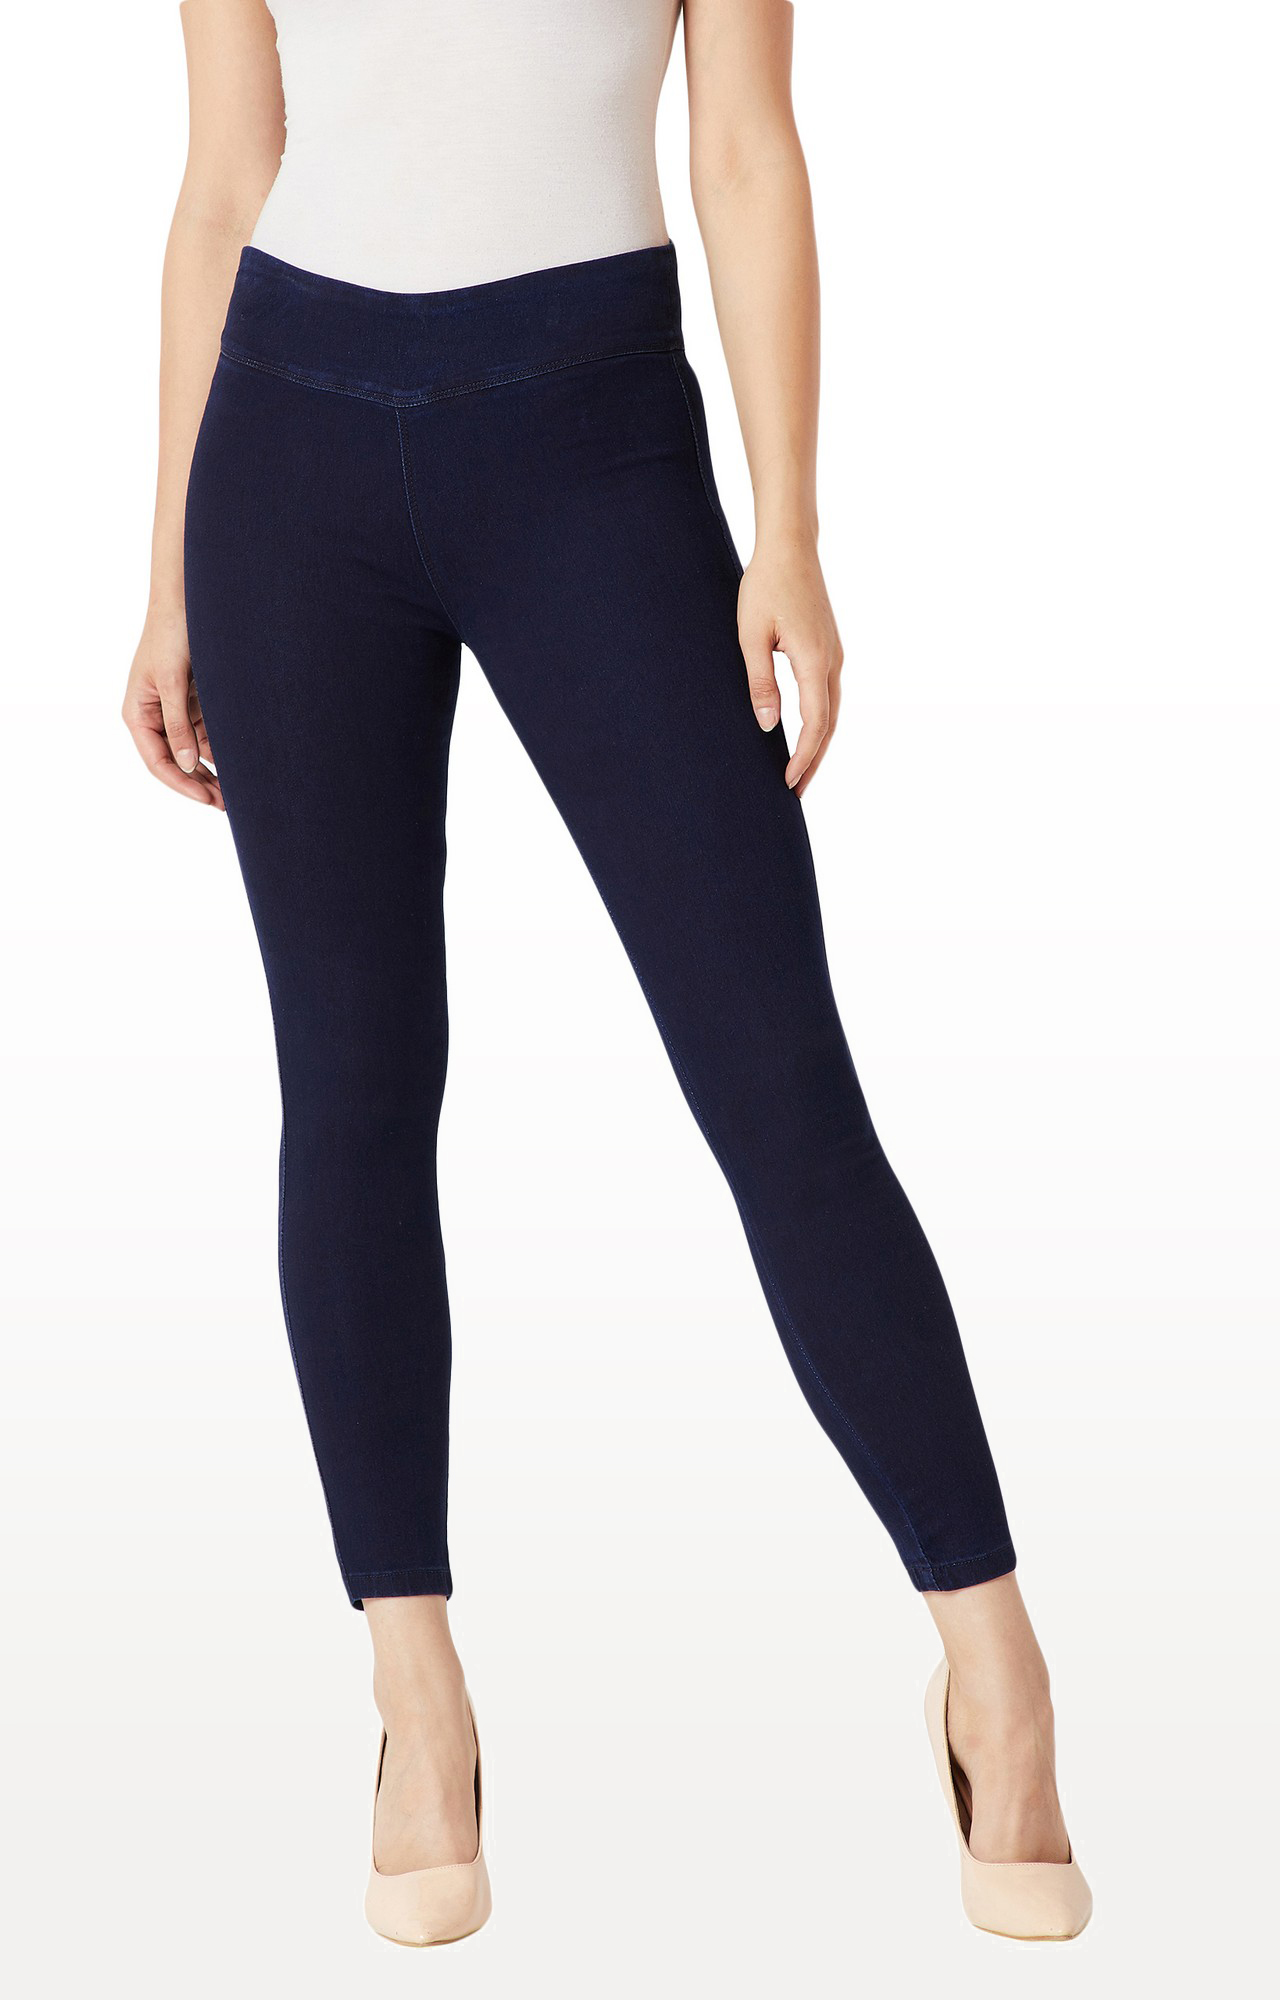 MISS CHASE | Navy Solid High Rise Clean Look Stretchable Denim Jeggings